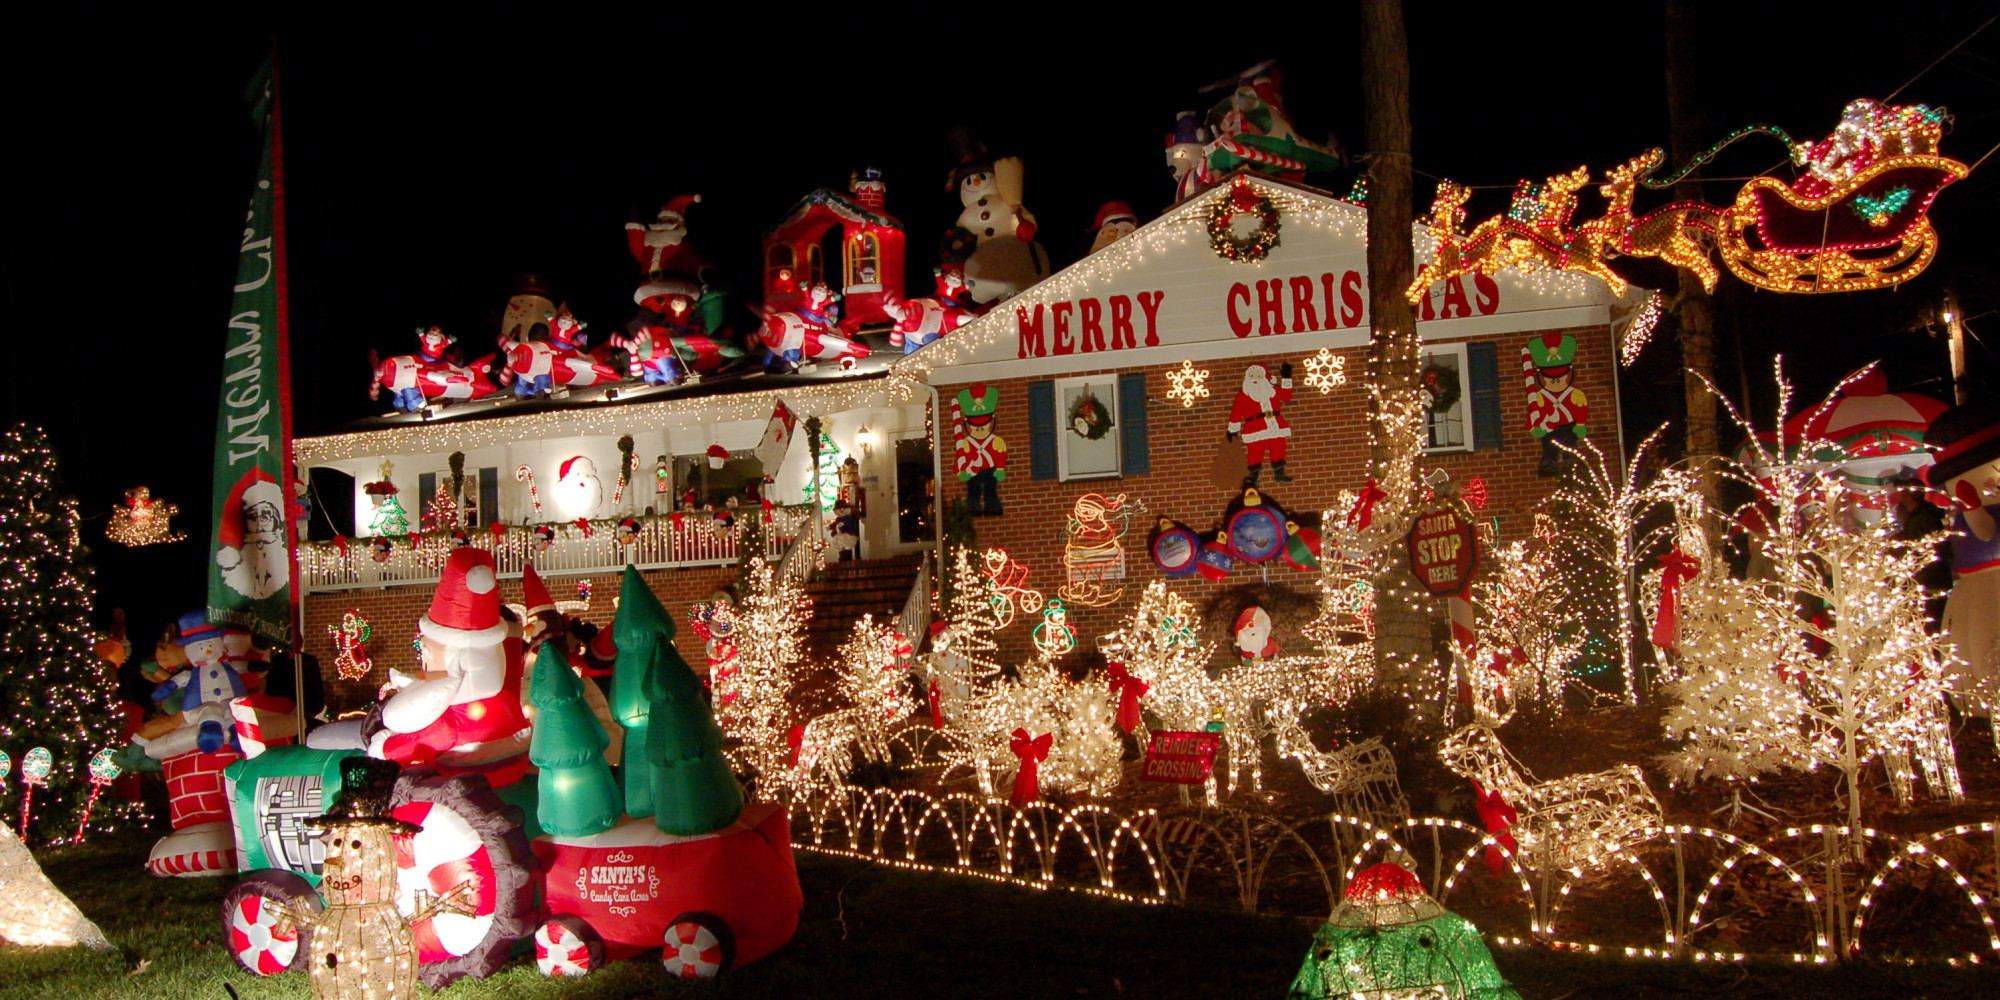 Christmas Decorating 9 tacky christmas decorations that will ruin the holidays | huffpost